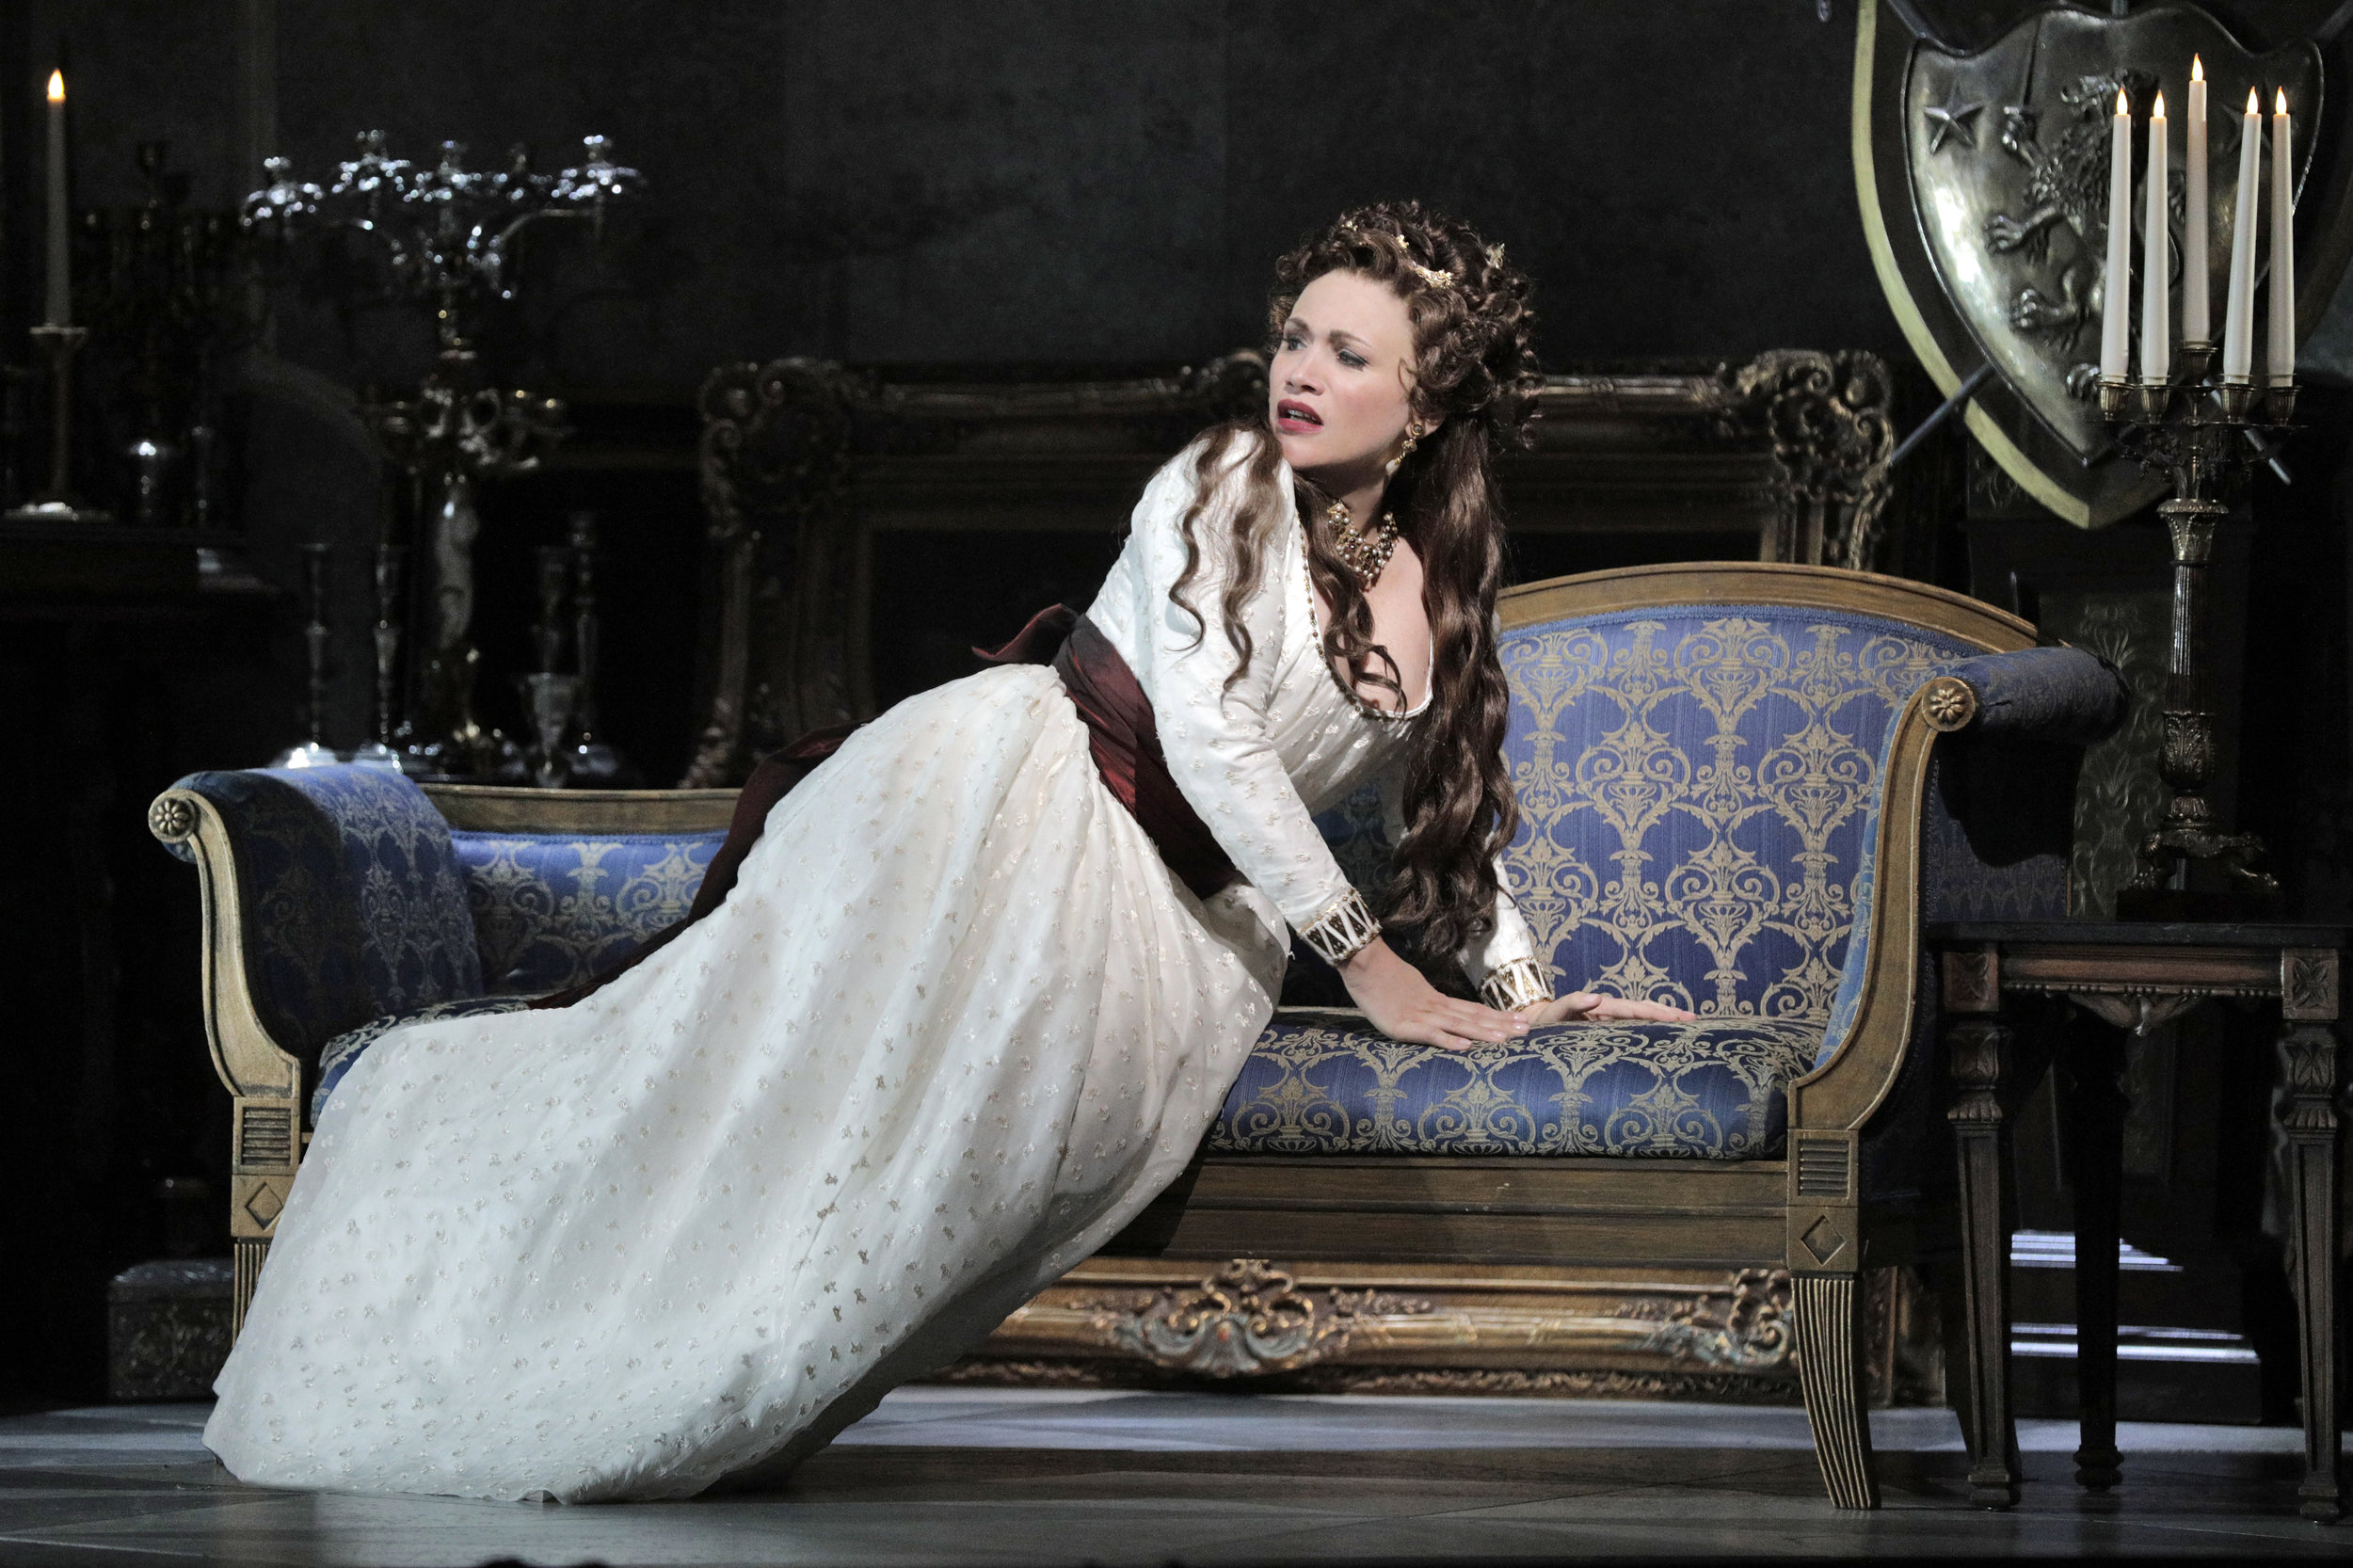 Giannattasio as Tosca